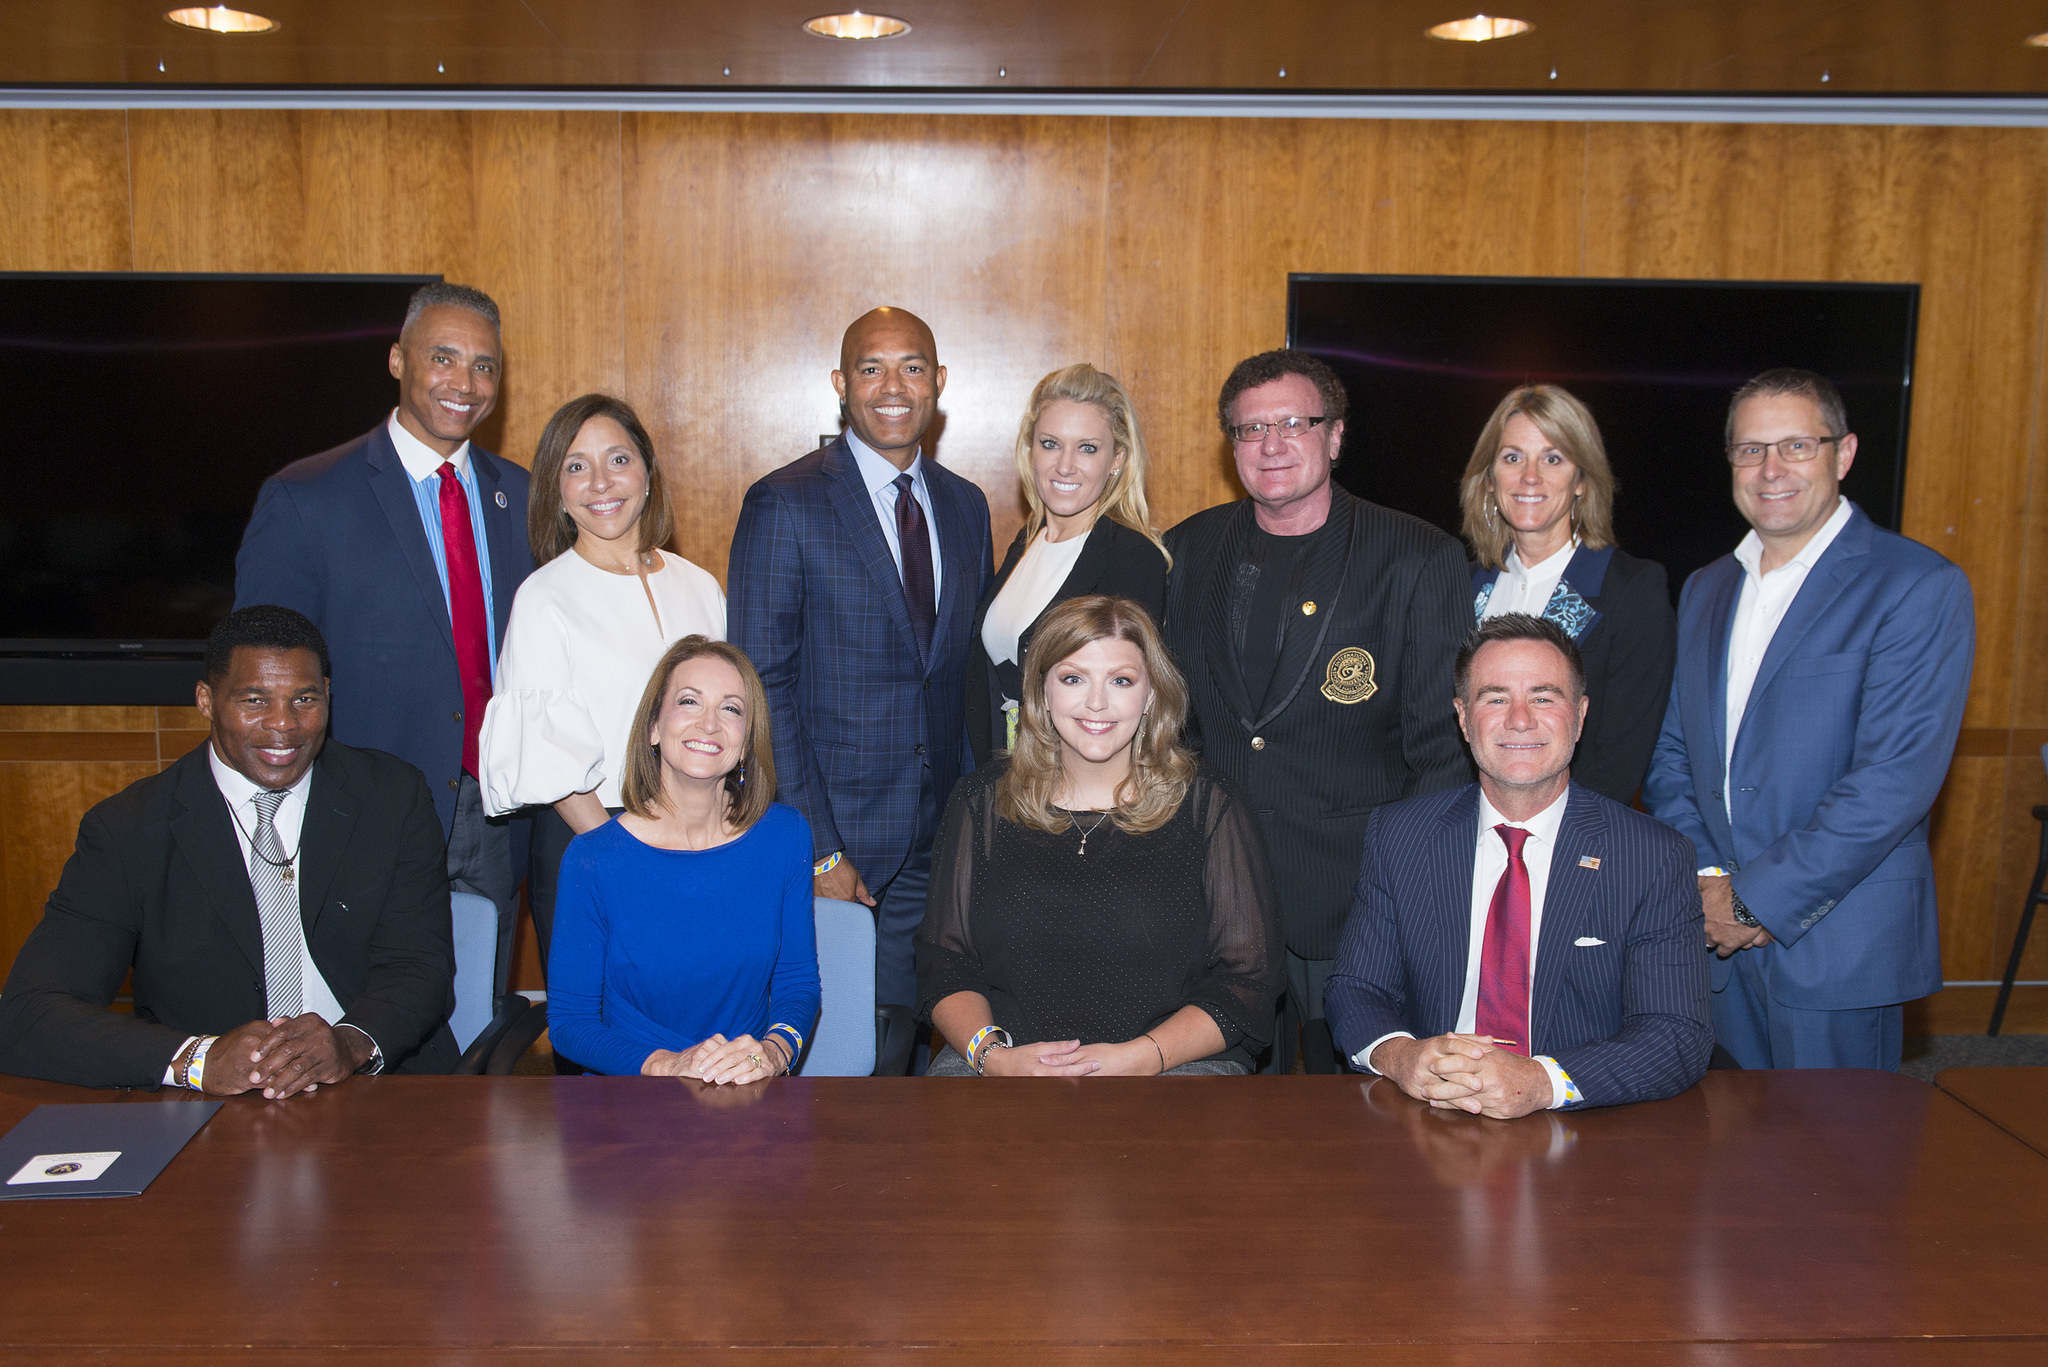 Members of the President's Council on Sports, Fitness & Nutrition - September 21, 2018